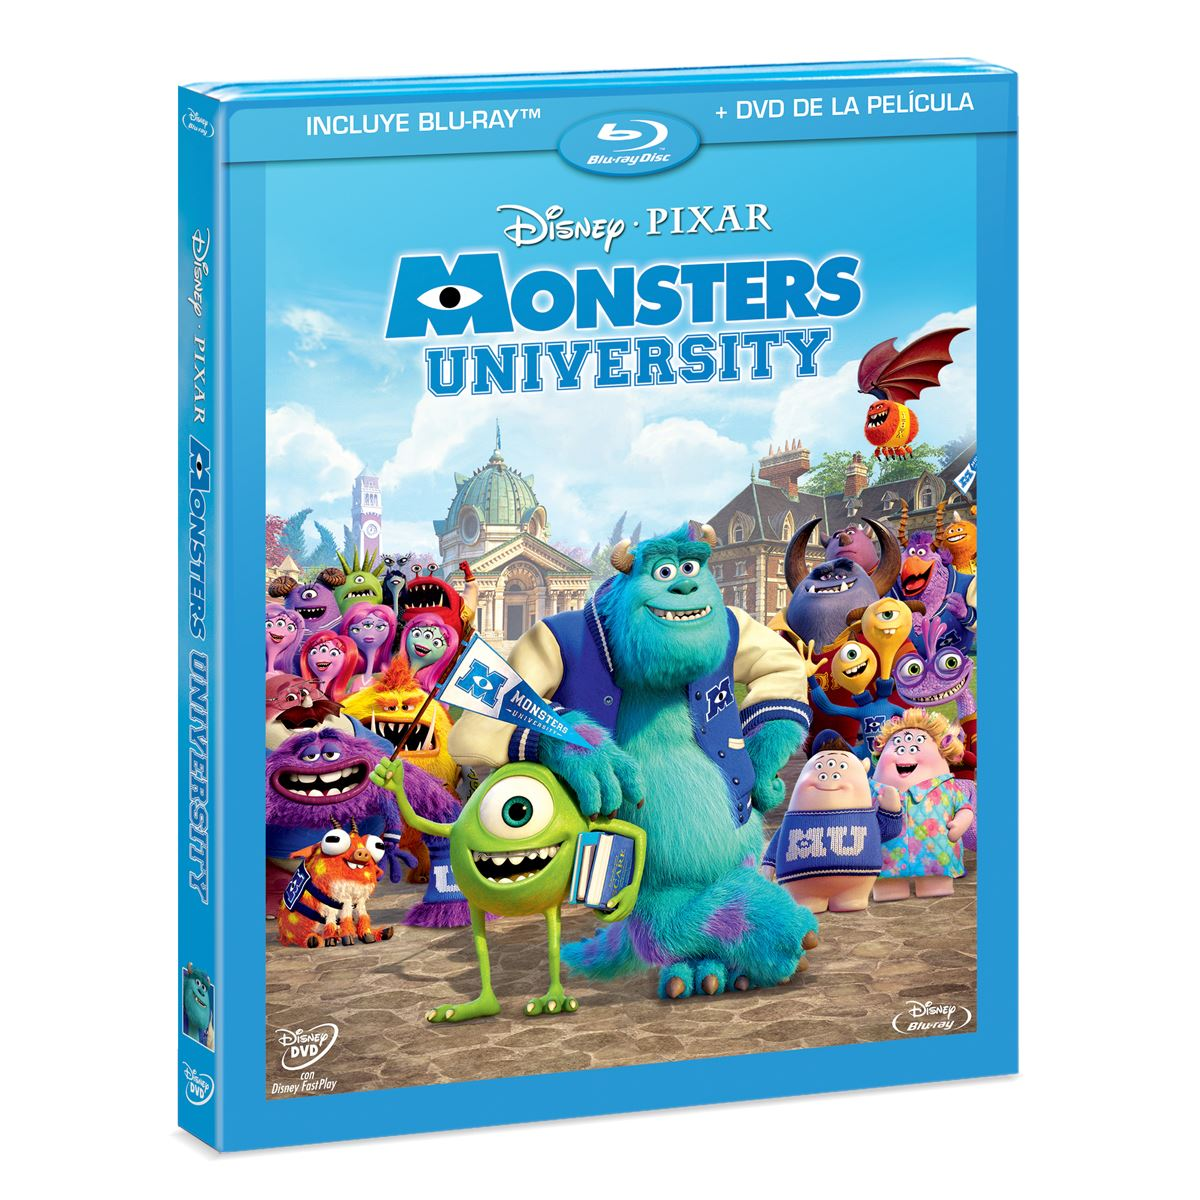 BR/DVD Monsters University Hibrido